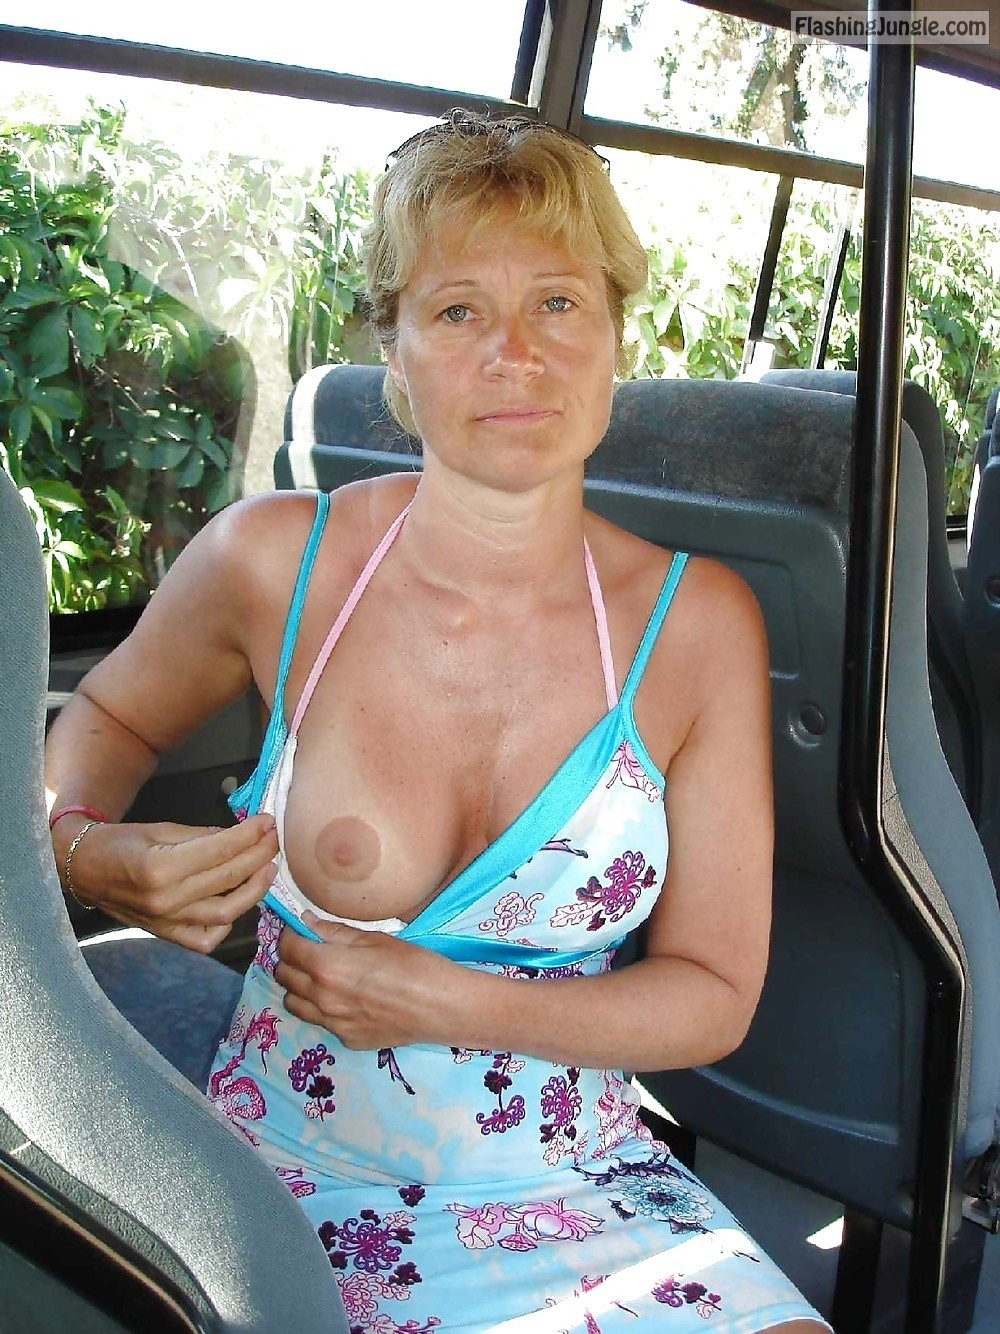 Public Flashing Pics Mature Flashing Pics Boobs Flash Pics